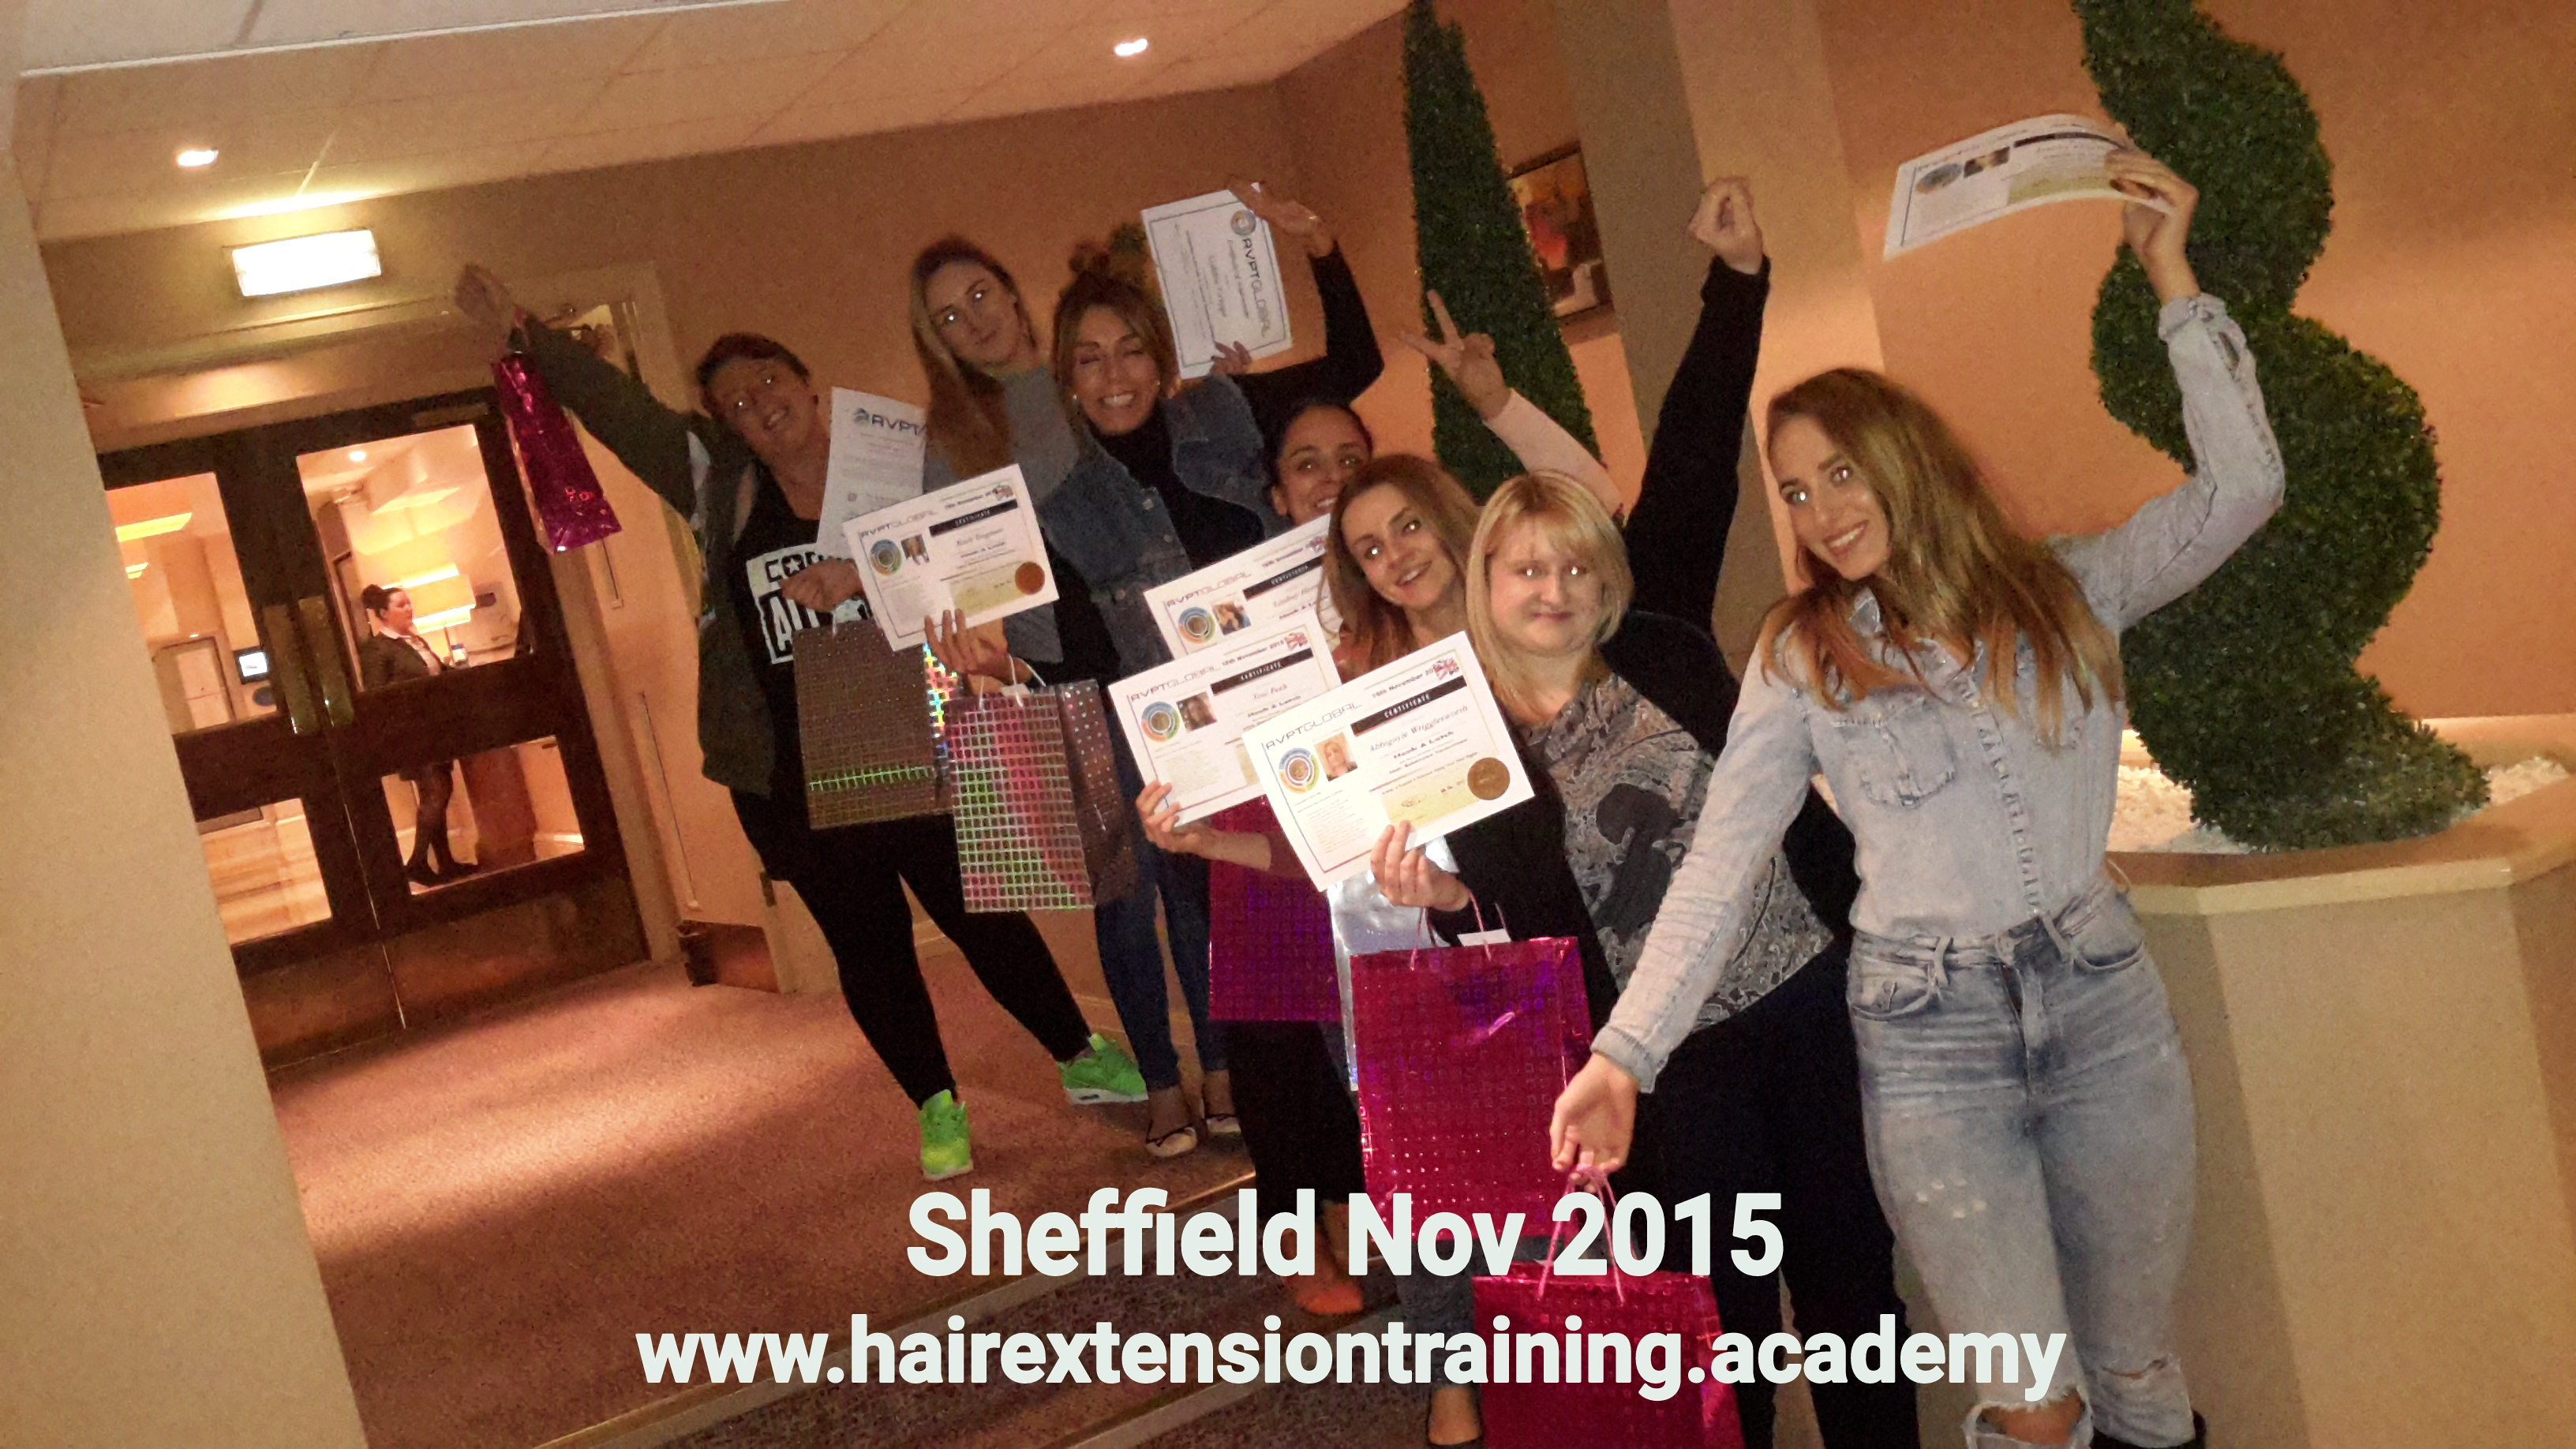 10 hair extension training academy diane shawe